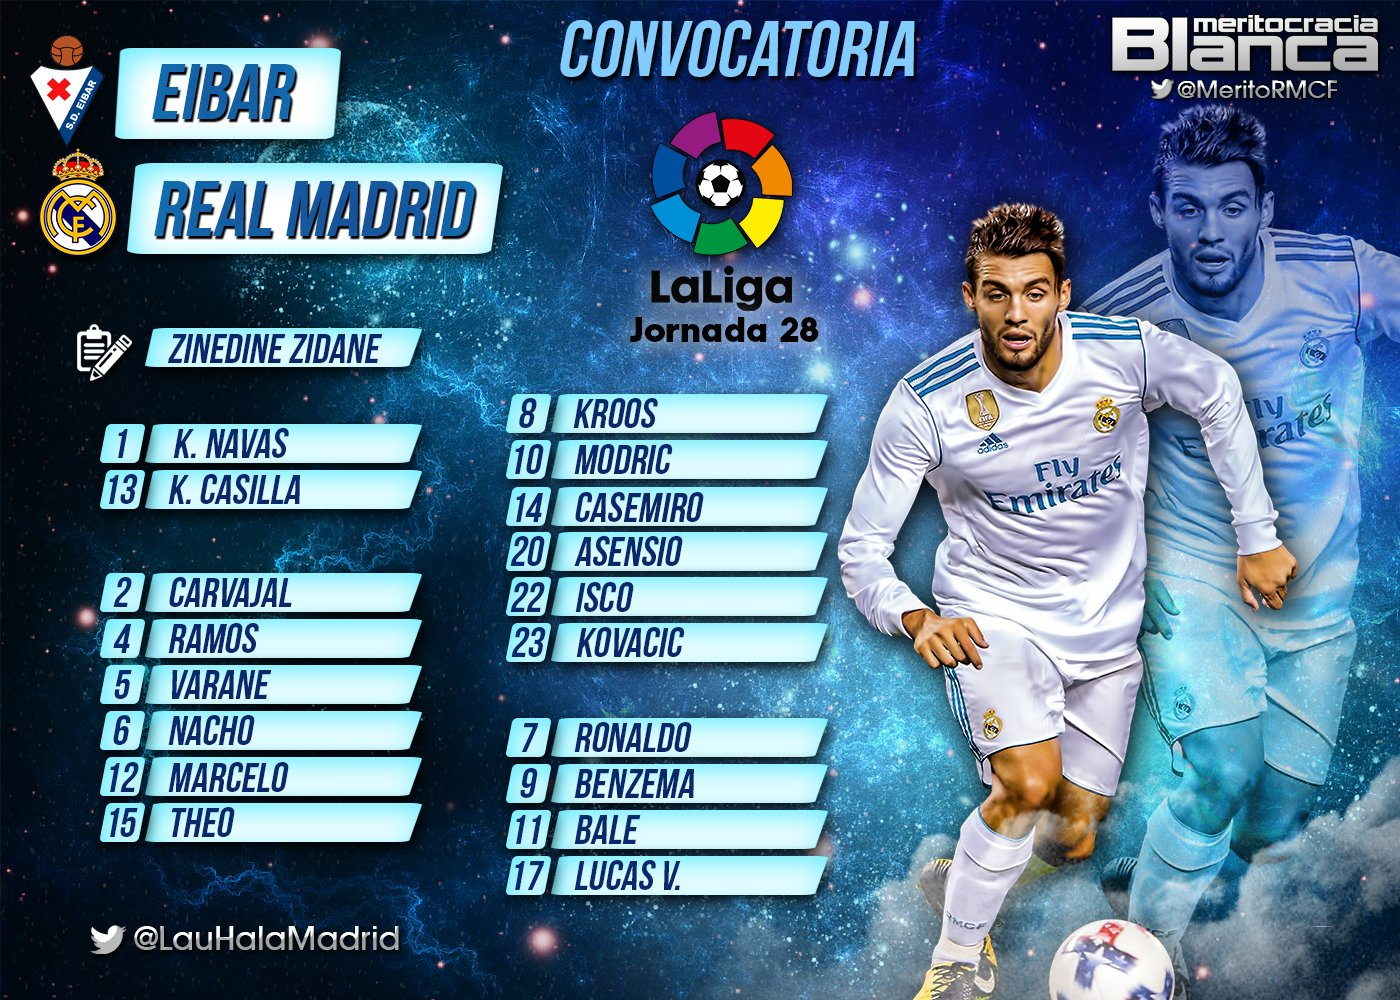 Convocatoria Éibar-Real Madrid